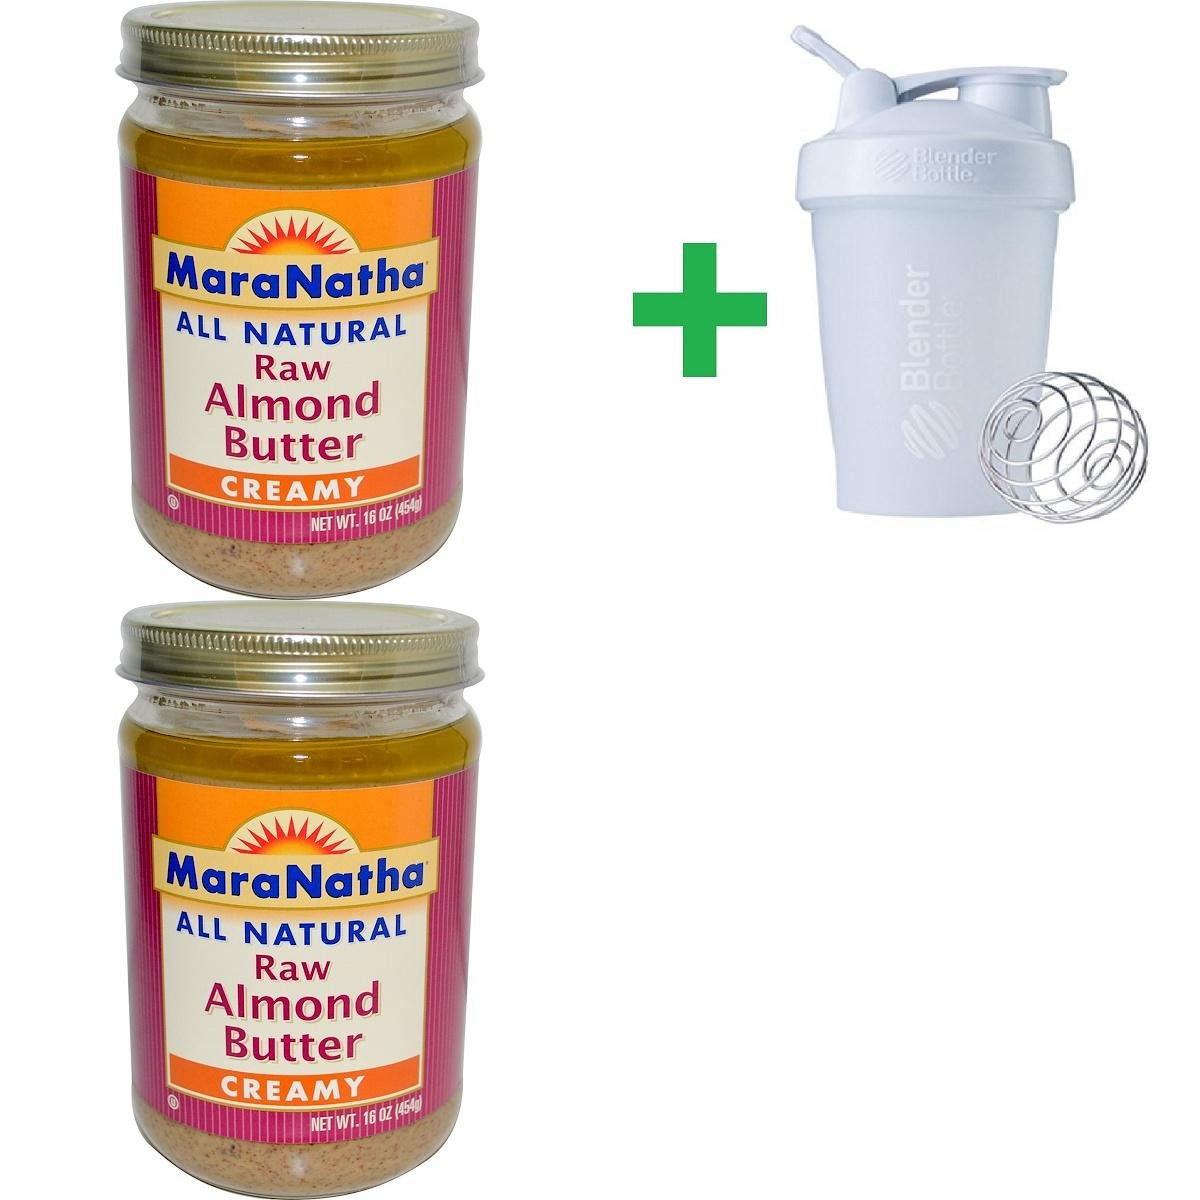 MaraNatha, All Natural Raw Almond Butter, Creamy, 16 oz (454 g) (2 PCS) + Assorted Sundesa, BlenderBottle, Classic With Loop, 20 oz